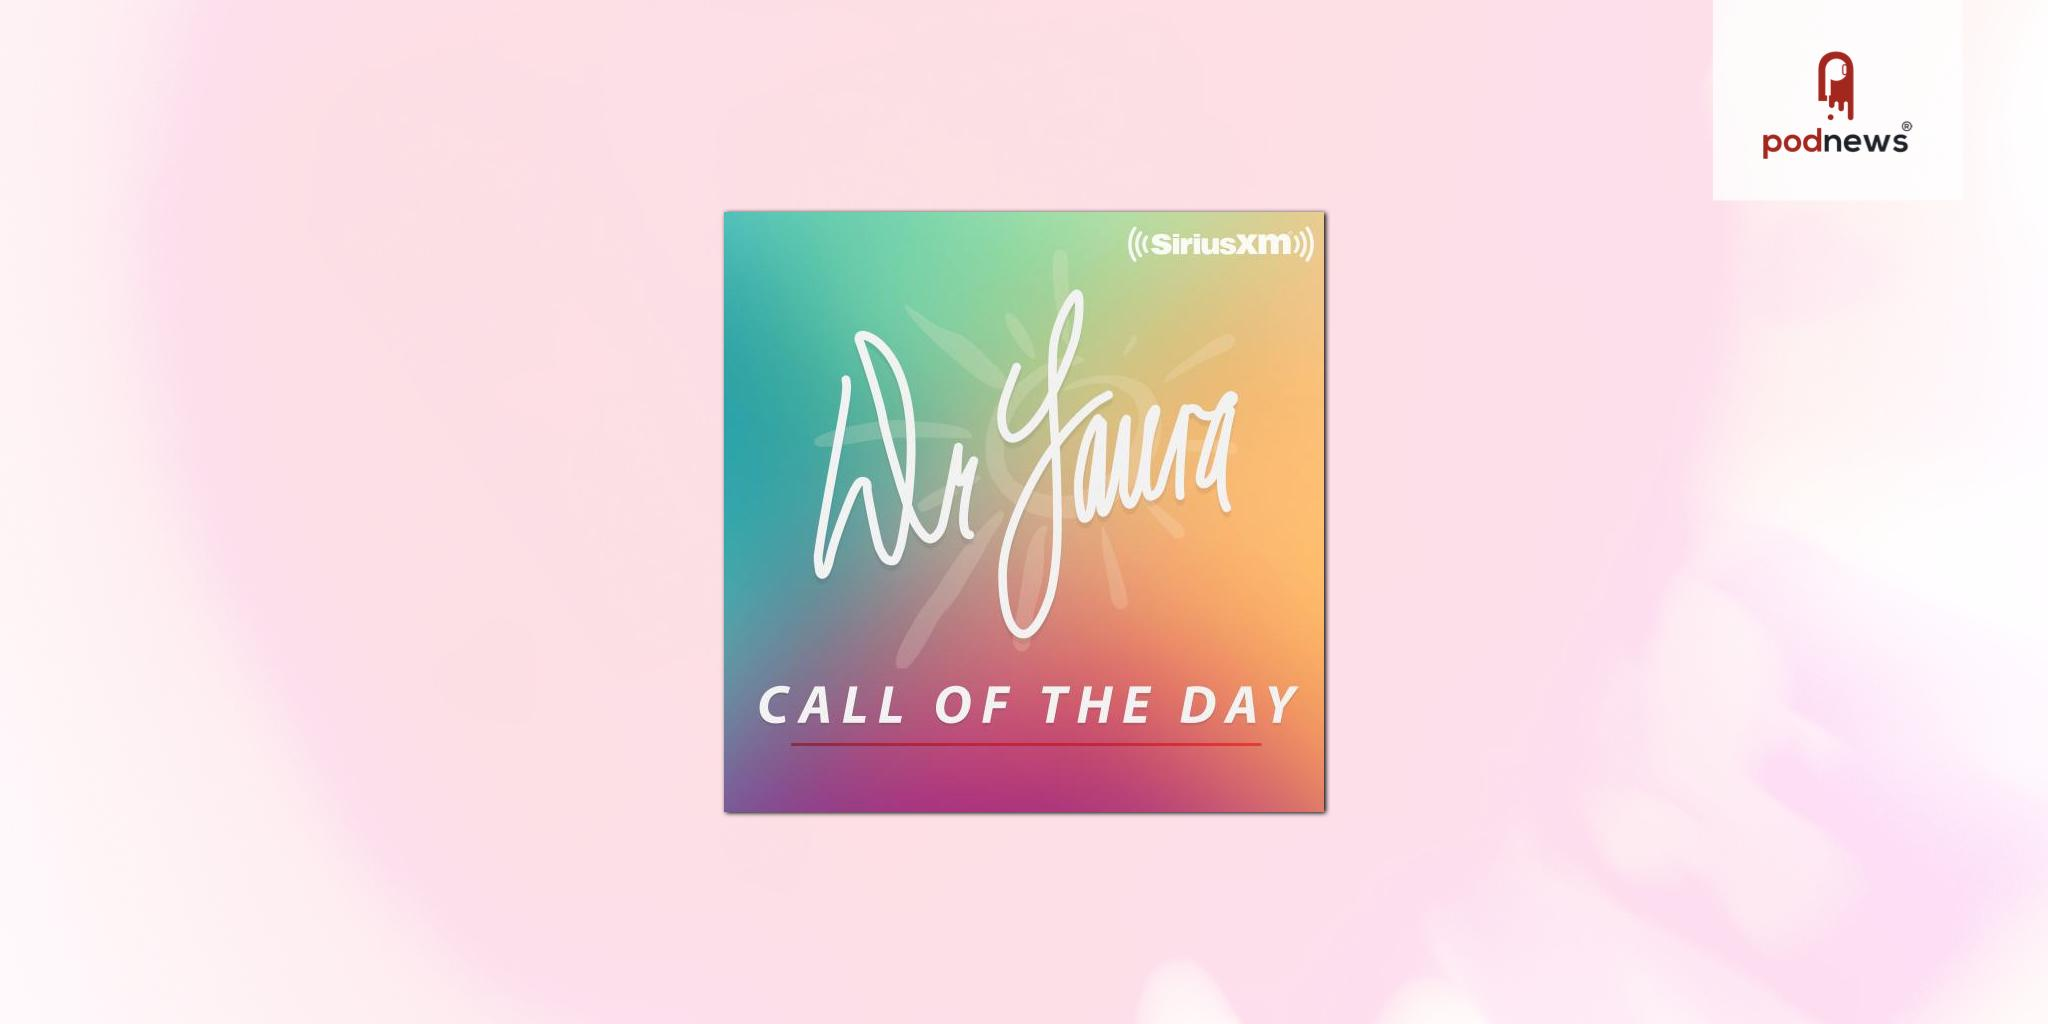 Dr Laura's Call Of The Day podcast reaches 100 million downloads